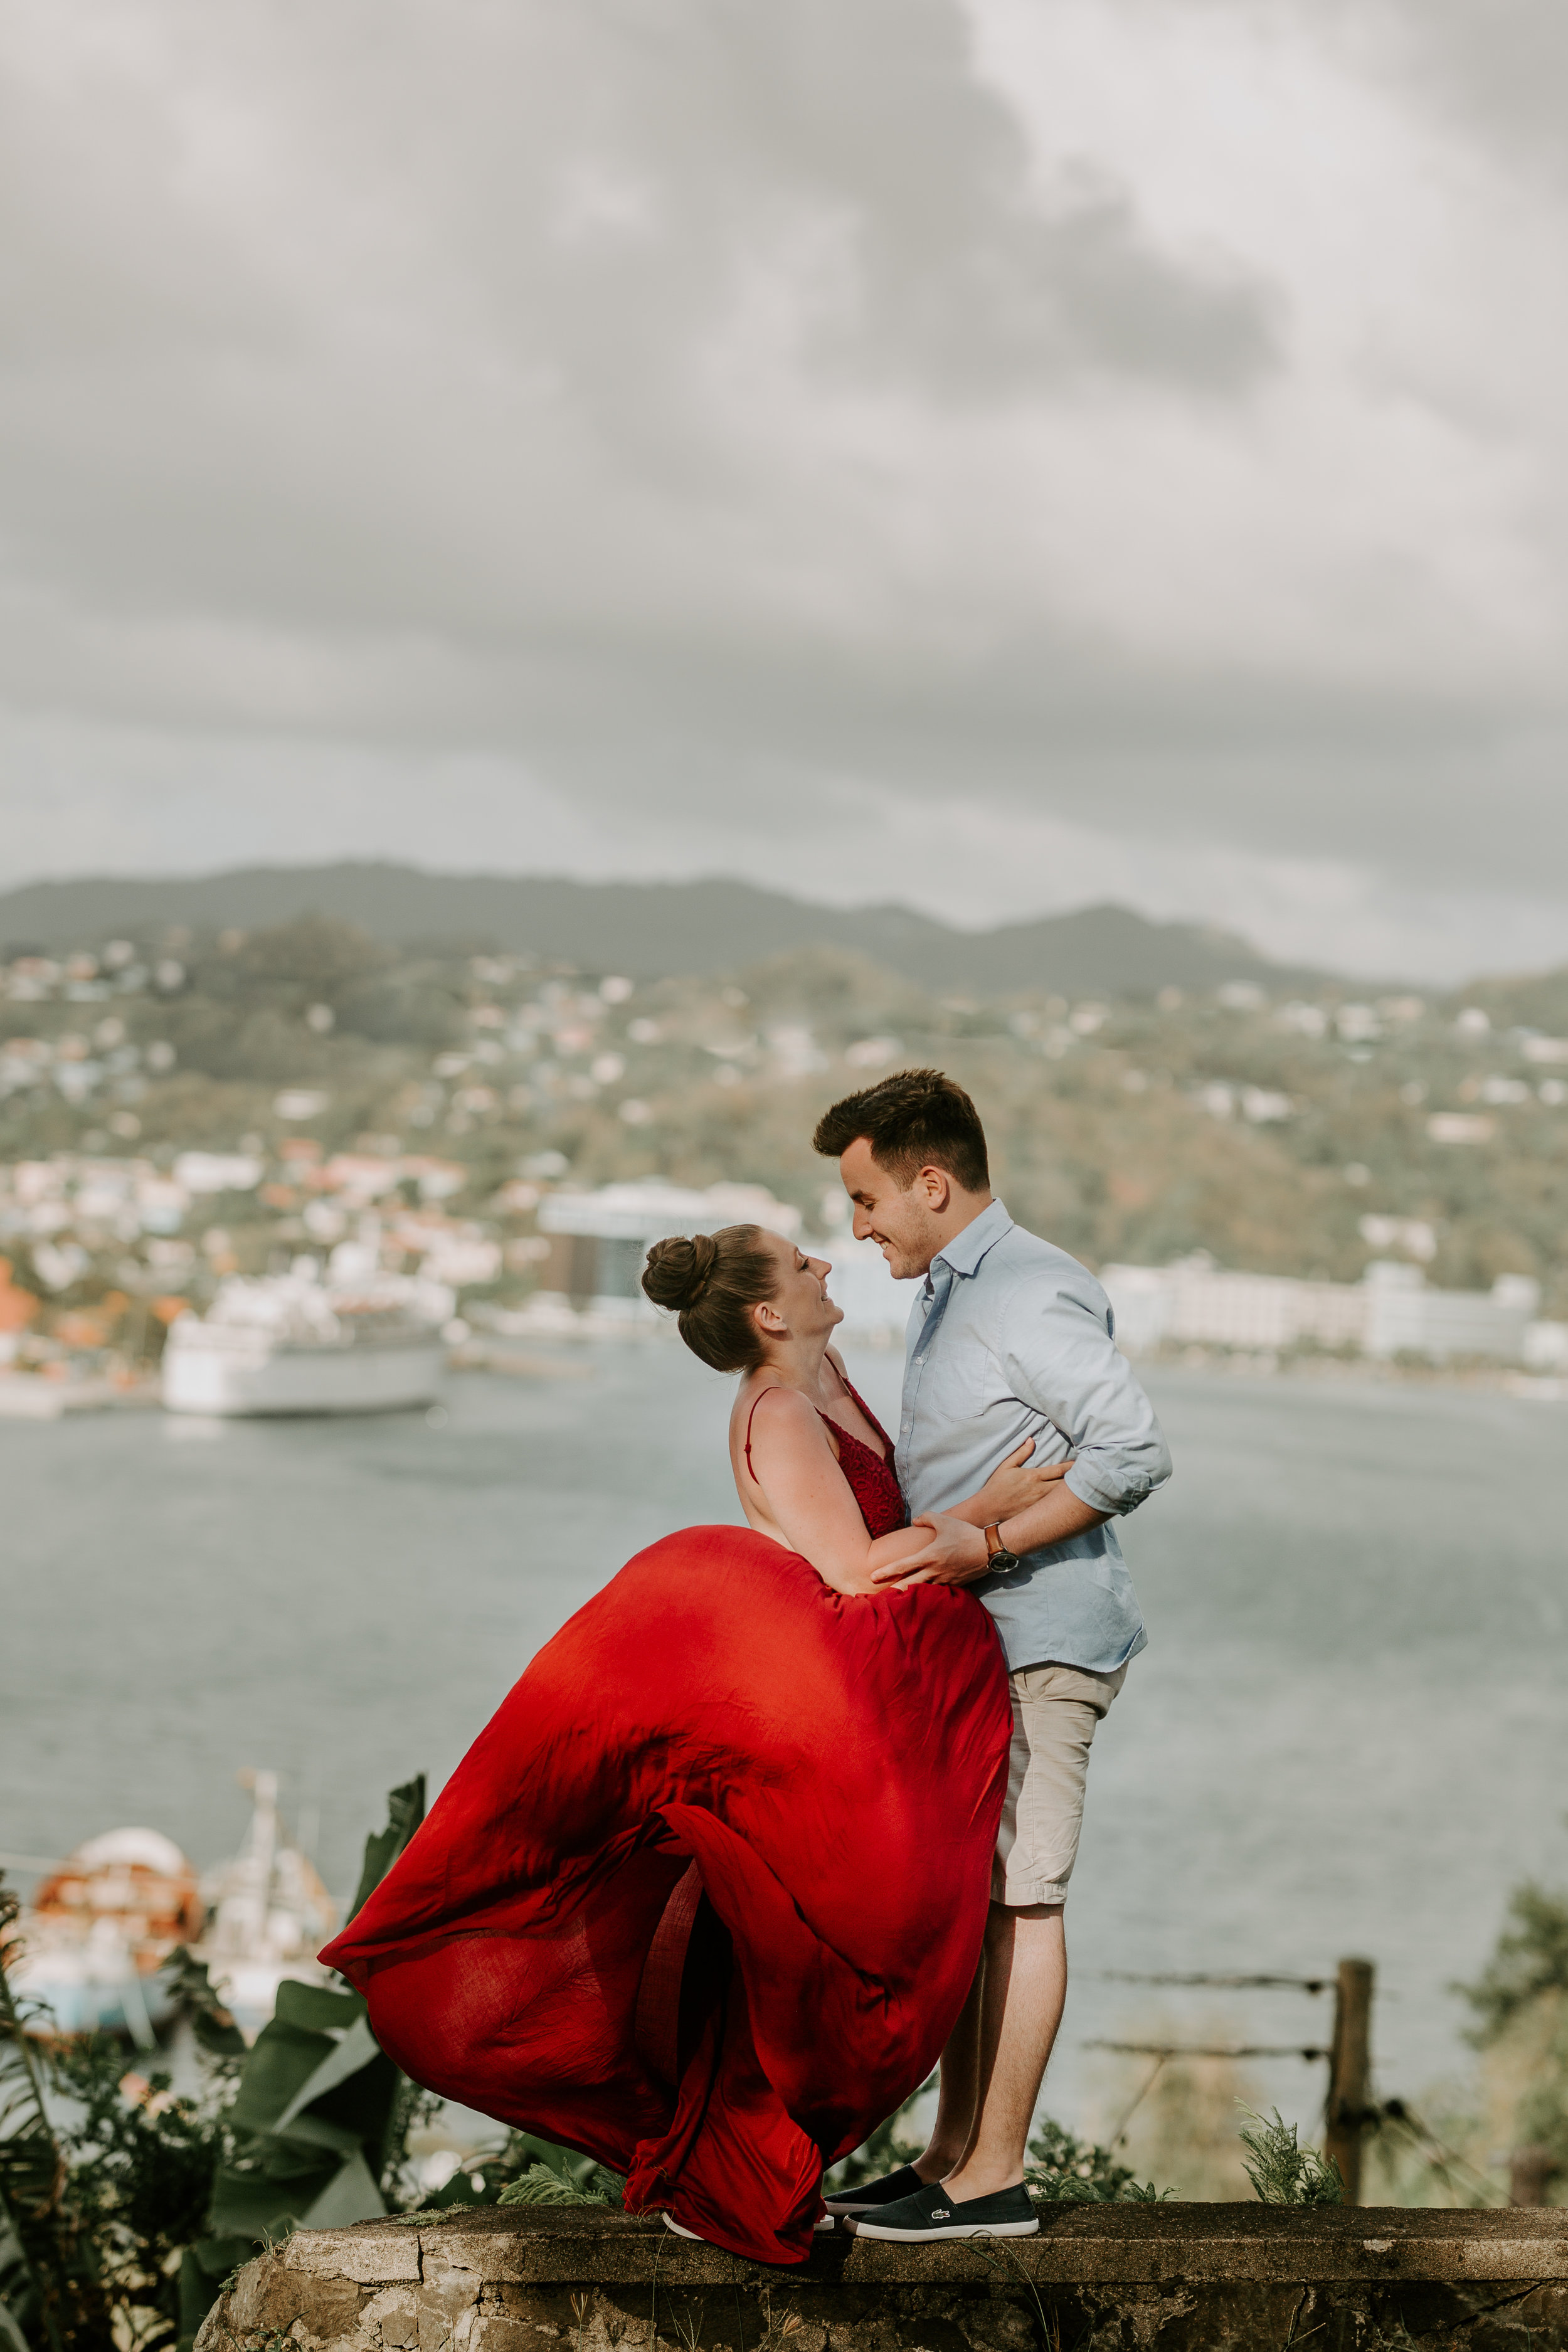 nicole-daacke-photography-st-lucia-destination-wedding-photographer-day-after-session-castries-sandals-resort-adventure-island-engagement-soufriere-piton-adventure-session-photos-photographer-4.jpg